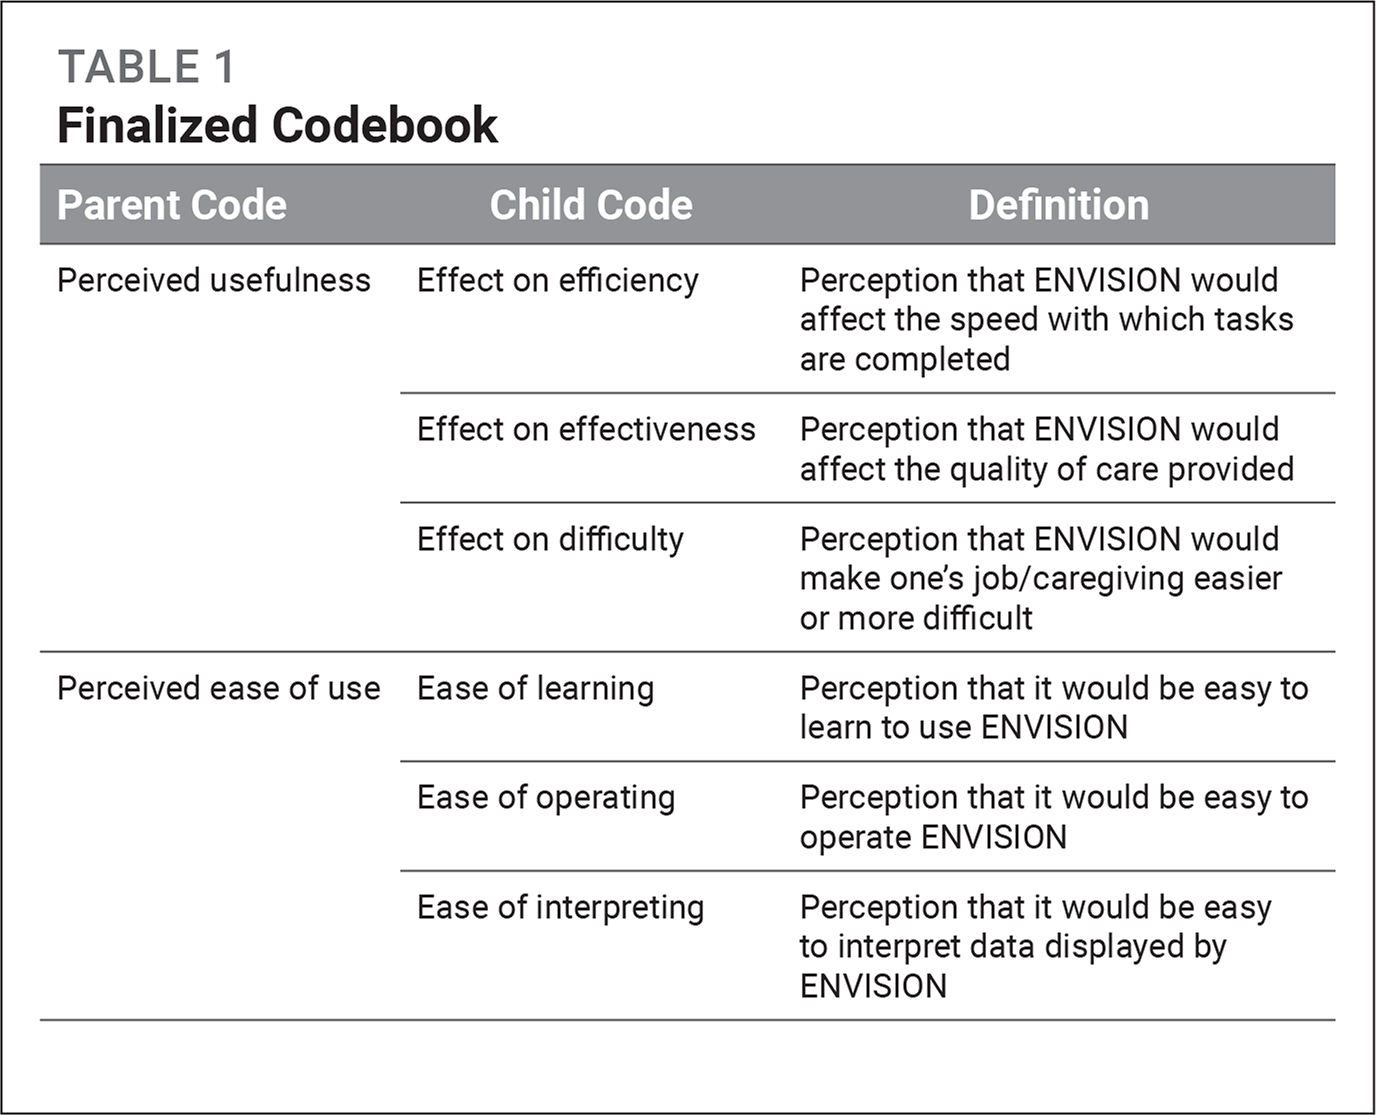 Finalized Codebook